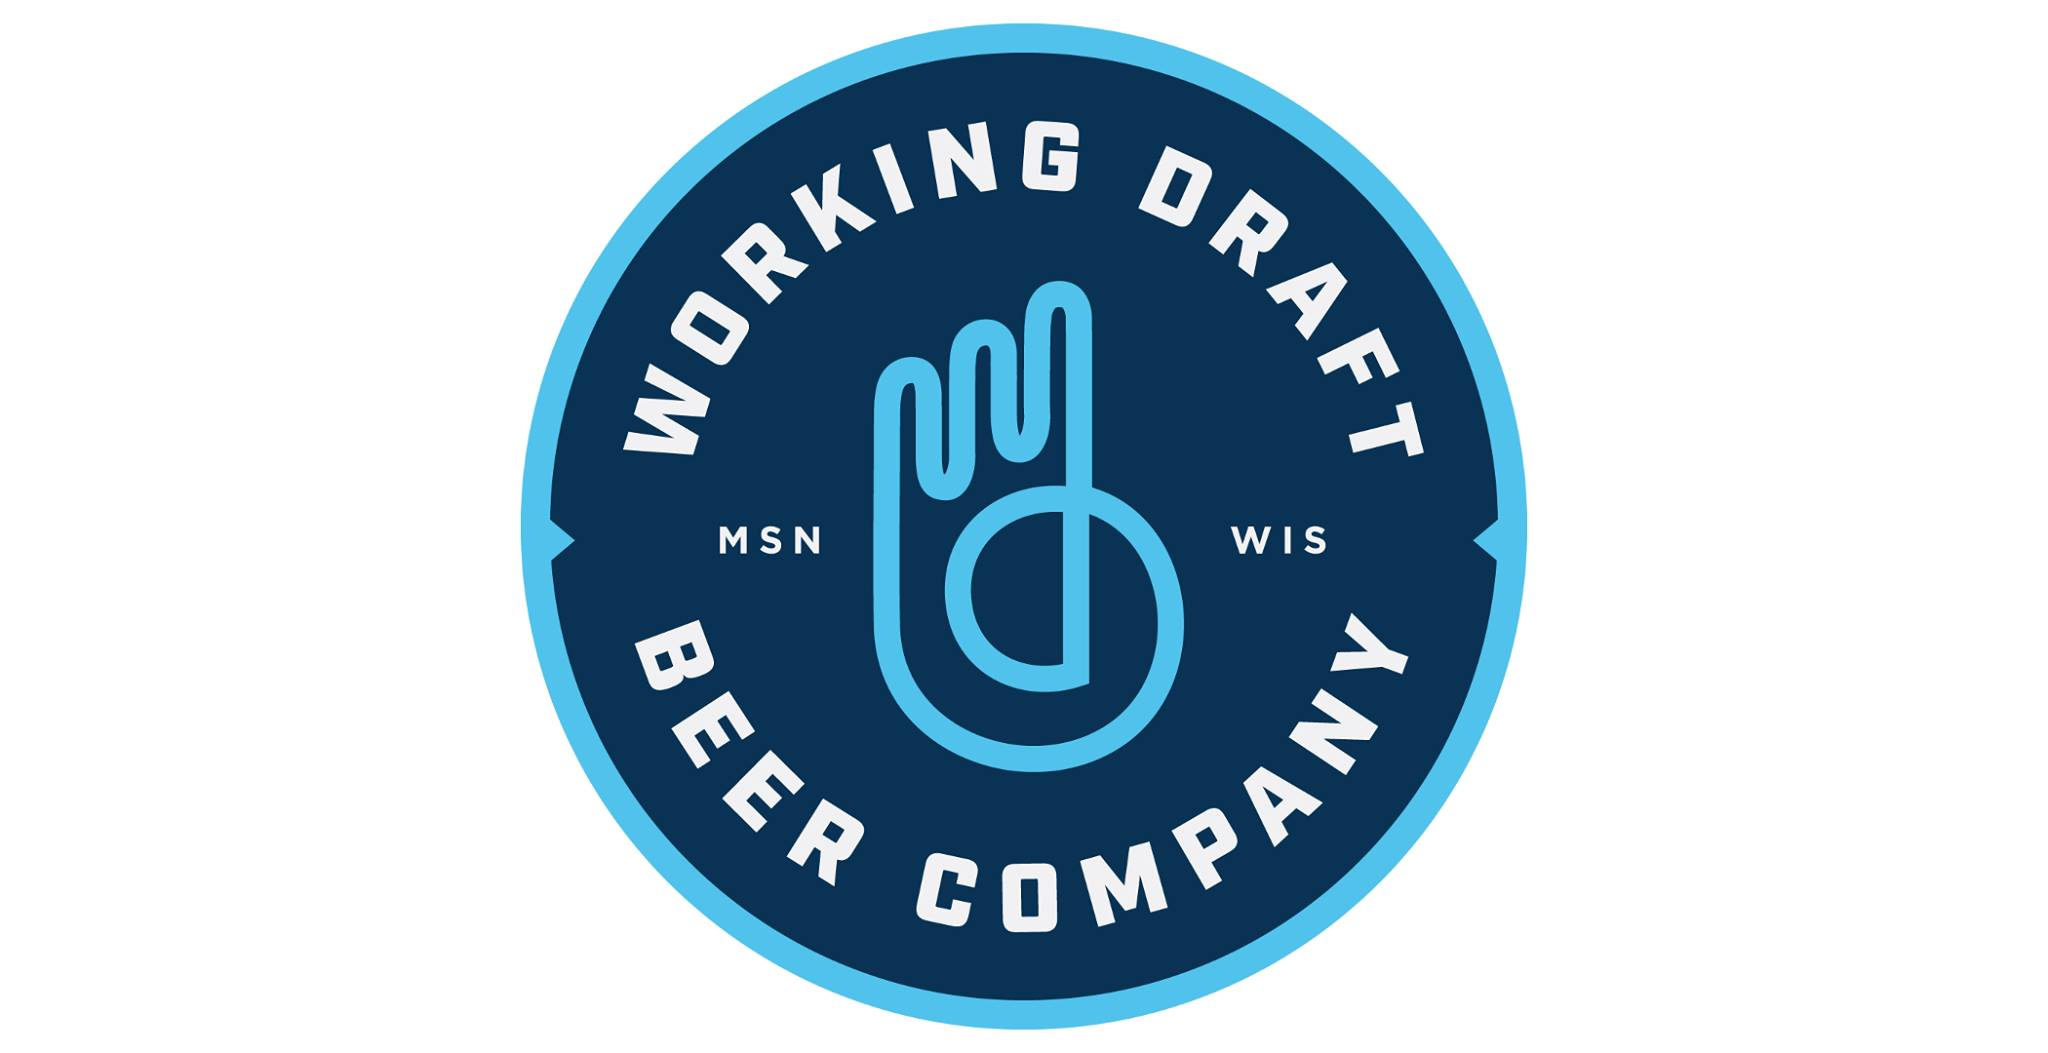 Working Draft Beer Company at Longtable